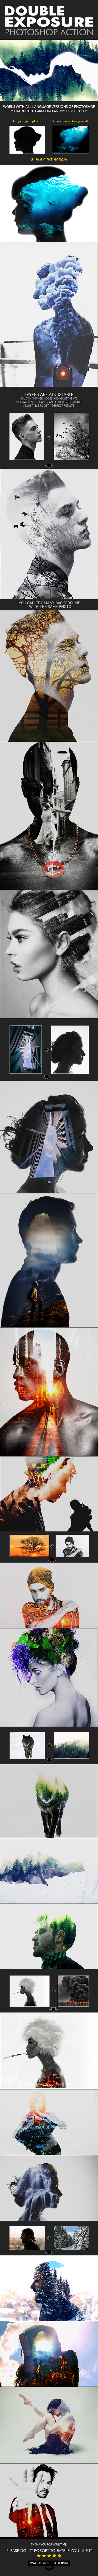 Double Exposure Action - Actions Photoshop